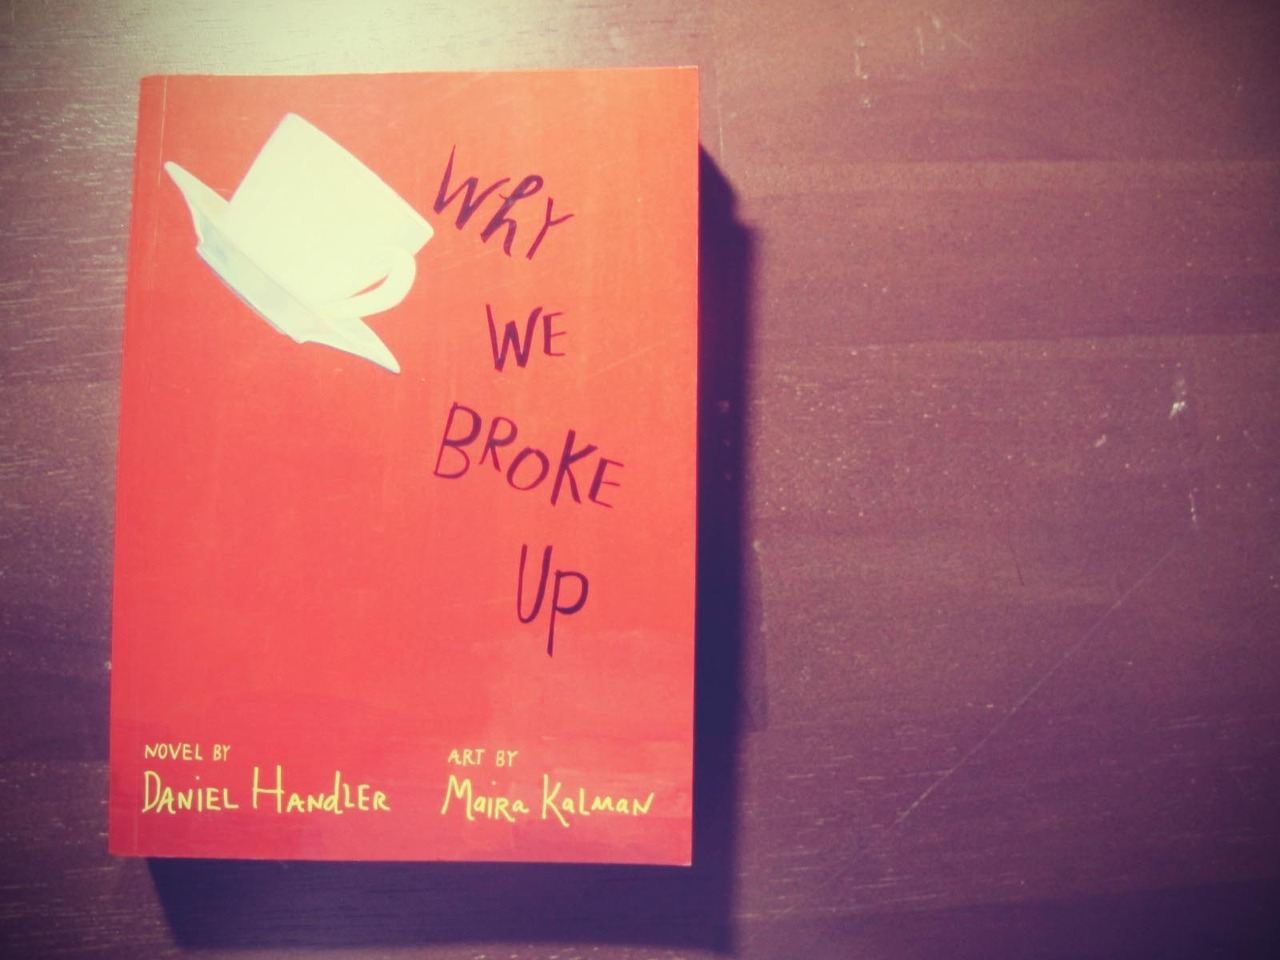 12 in 2012 Why we broke up by Daniel Handler. For June I decided I needed to get back to reading books that were non-school related. I passed this book several times at the store but my sister said she would judge me if I bought it. I heard her voice in my head all the way to the counter, telling me that I would just get all sad again reading this. I must admit, it did hit me at some points in the story that I probably wasn't ready to read a break up book, but I continued reading. I ended up absolutely devouring this book. It was wonderful, despite the roller coaster of emotions I was feeling chapter after chapter.  I couldnt put it down! there were so many parts of the book where I had to stop reading to text my friend, Abe, and tell her how sad it was making me! (and how I needed her to read the book because I knew she'd understand!). So i'm telling all of you, go to the bookstore and get Why we broke up by Daniel Handler - FYI he's Lemony Snicket so expect great things from this book!